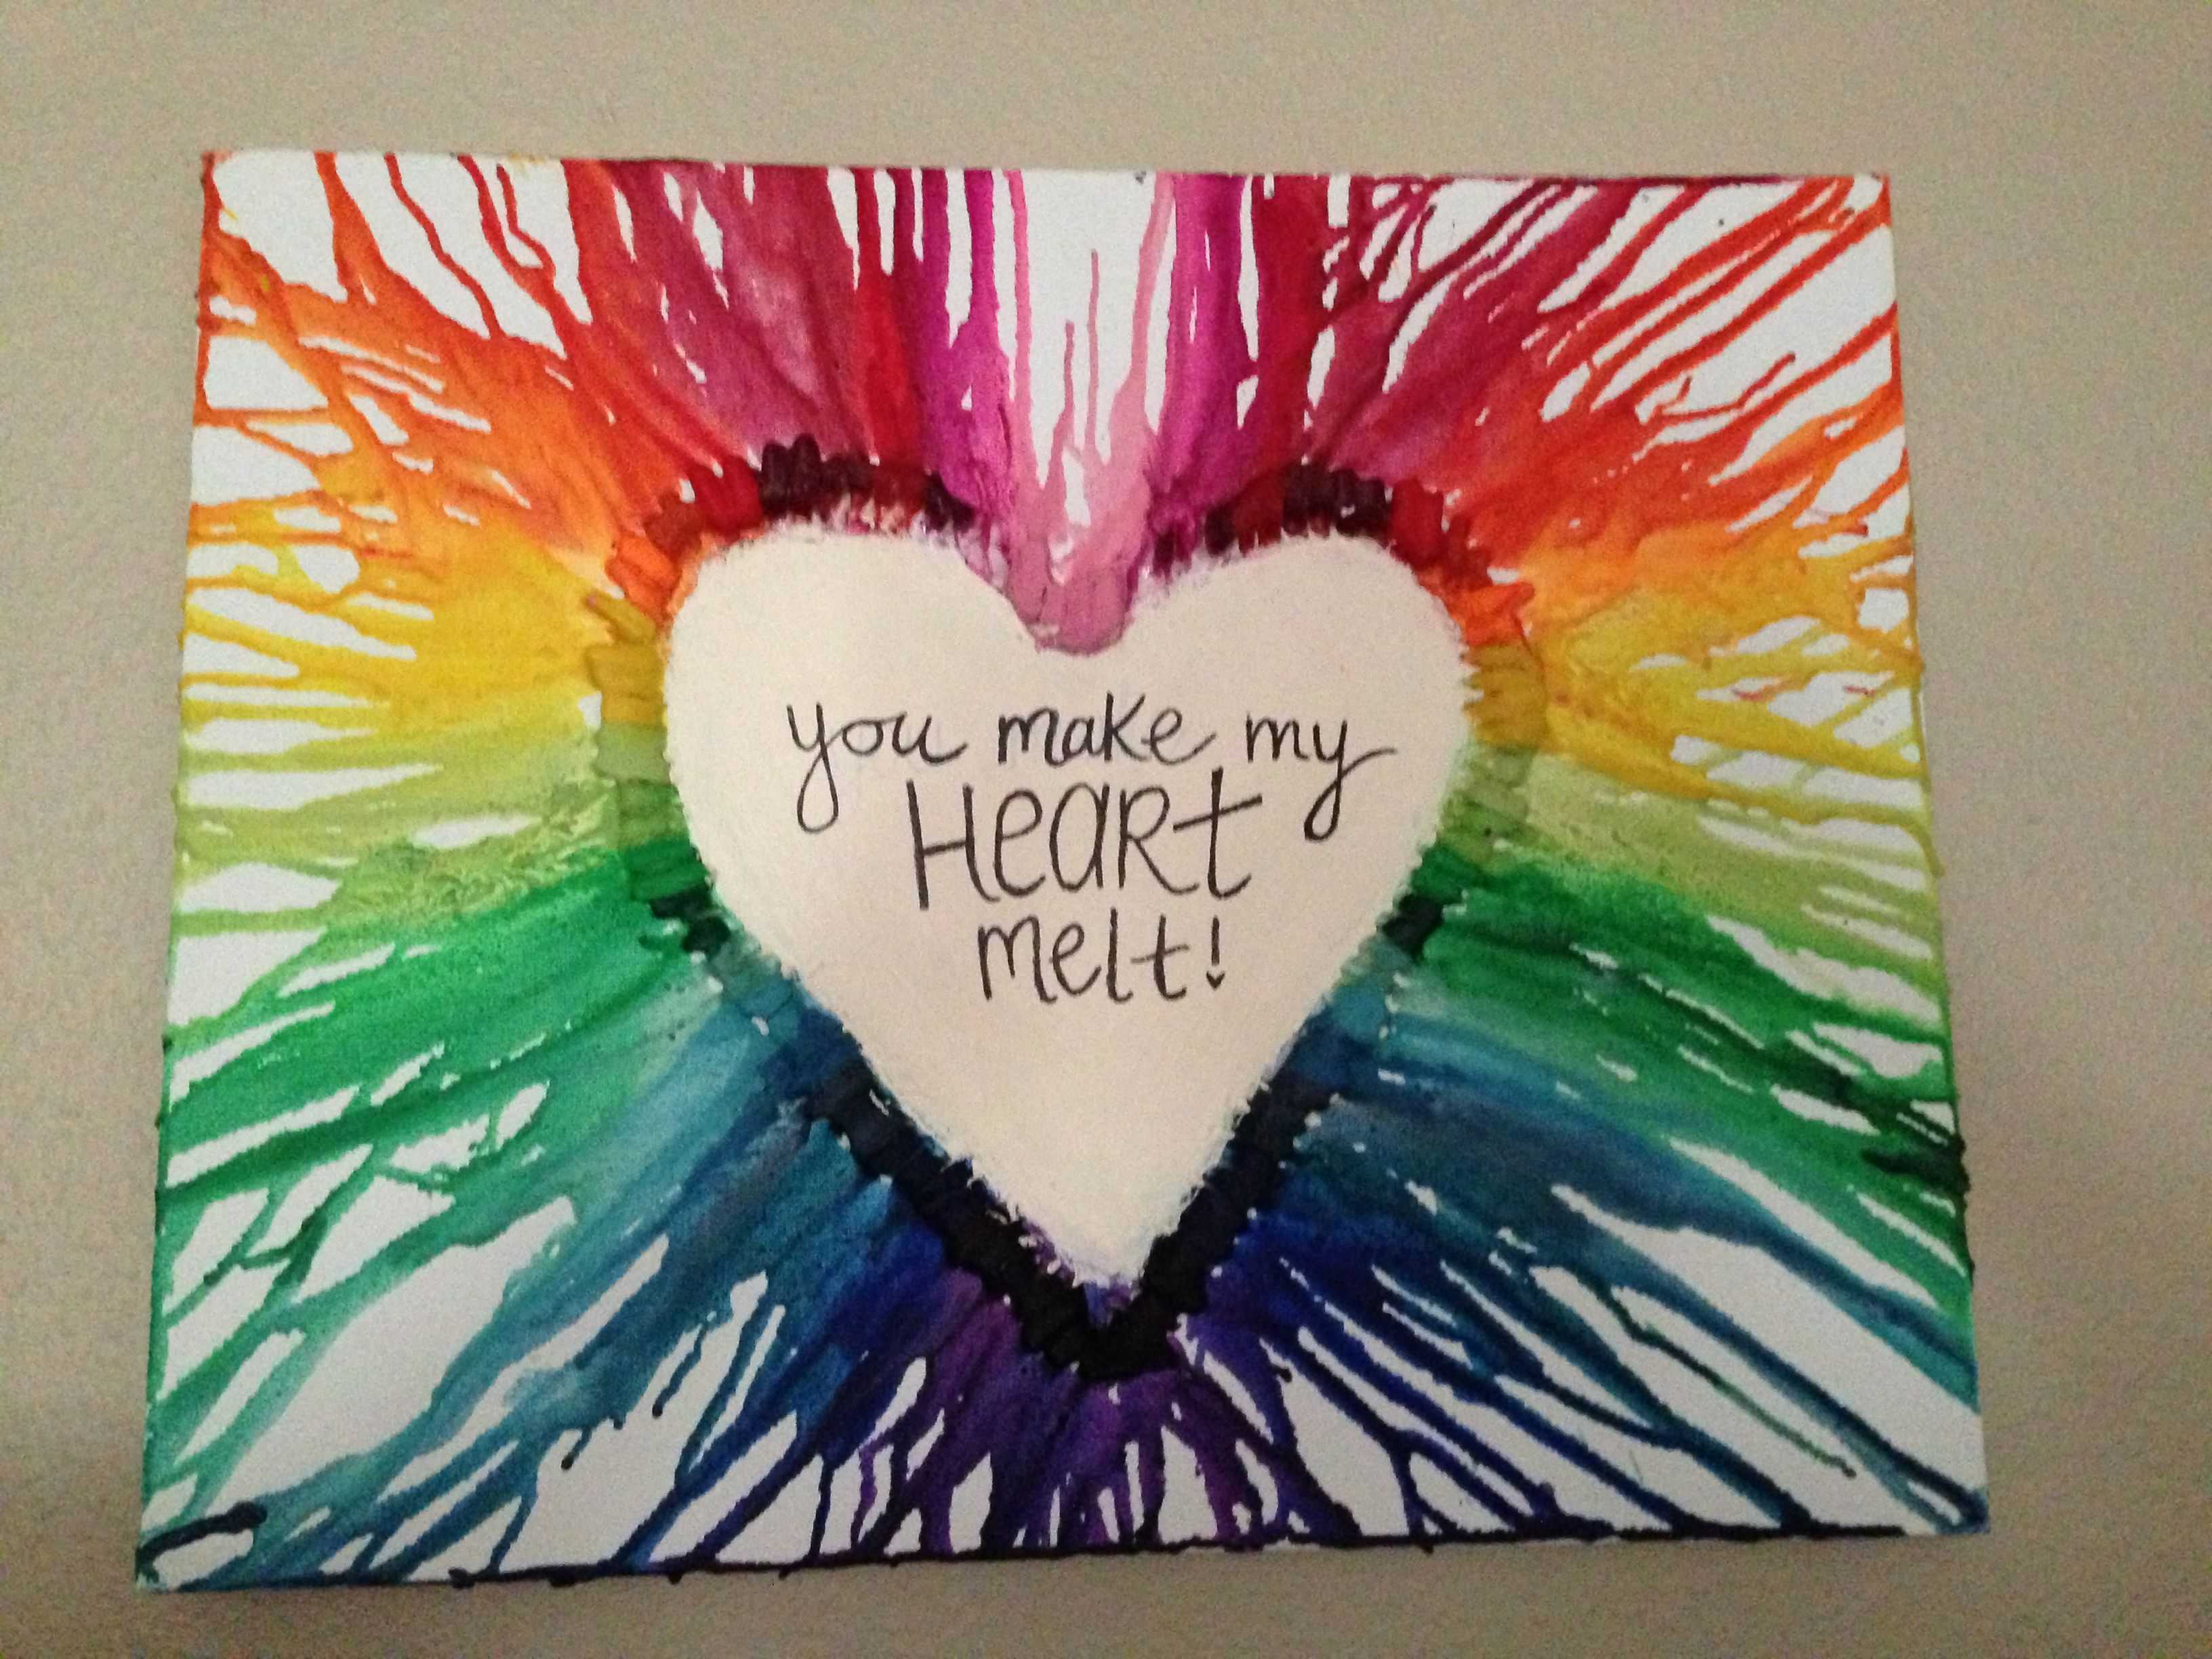 Crayon art!! Peel the crayons Hot glue the crayons on a canvas Blow dry